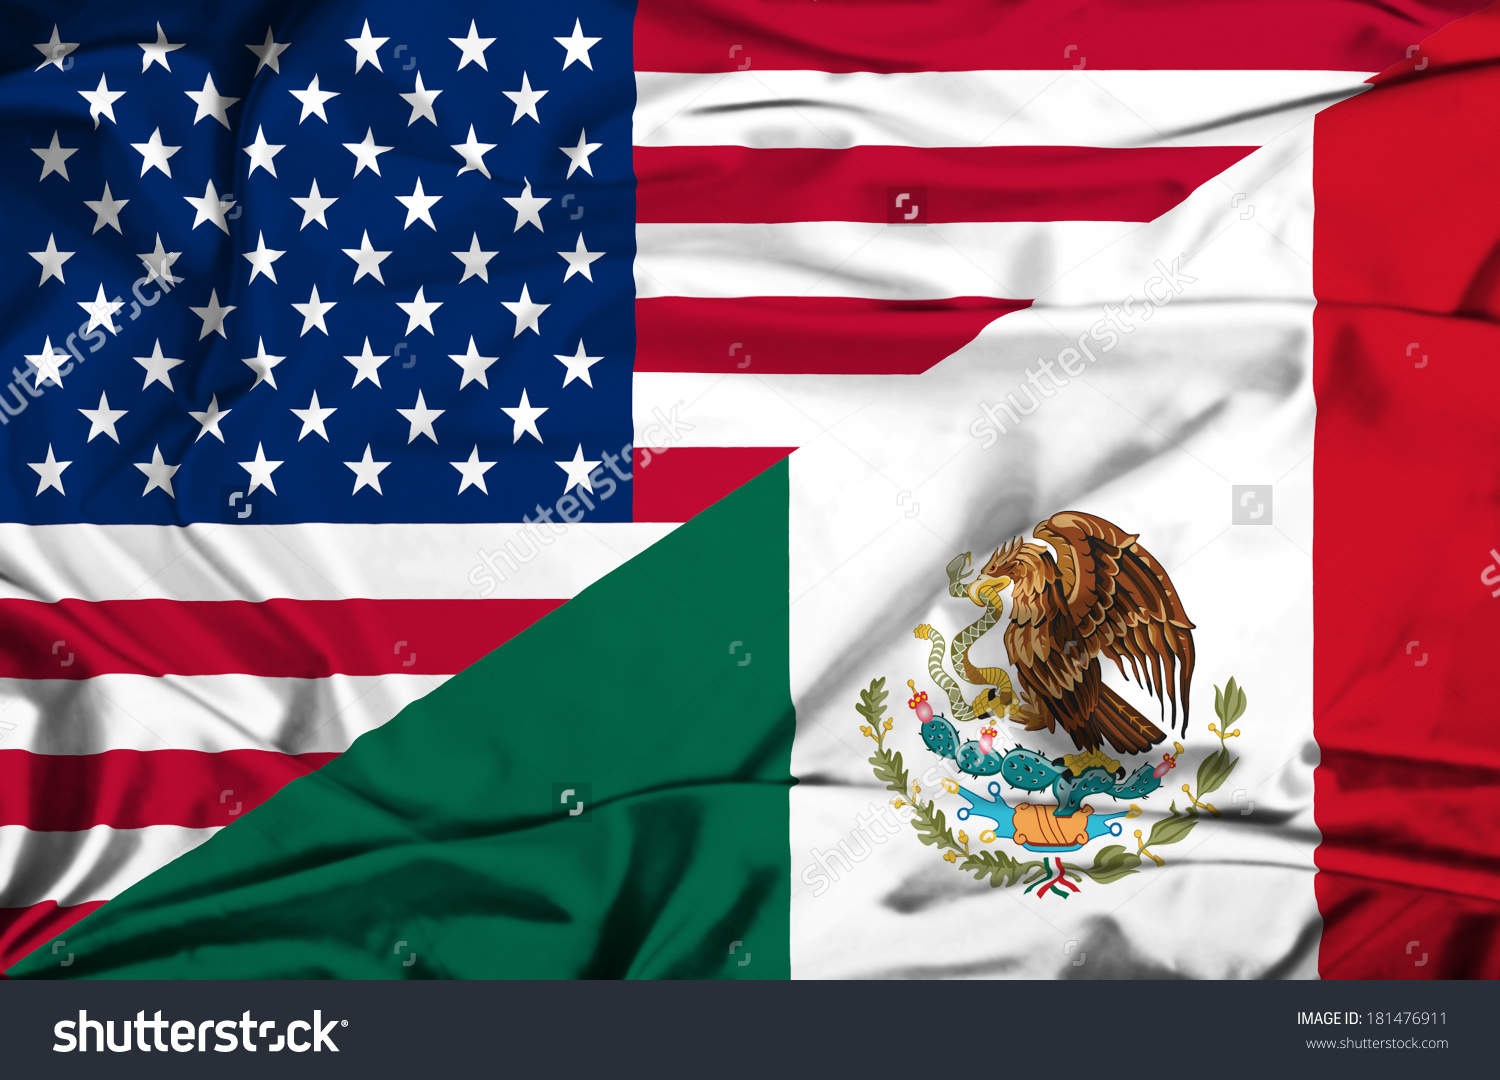 Us flag mexian flag clipart picture free download Mexican american flag clipart - ClipartFest picture free download